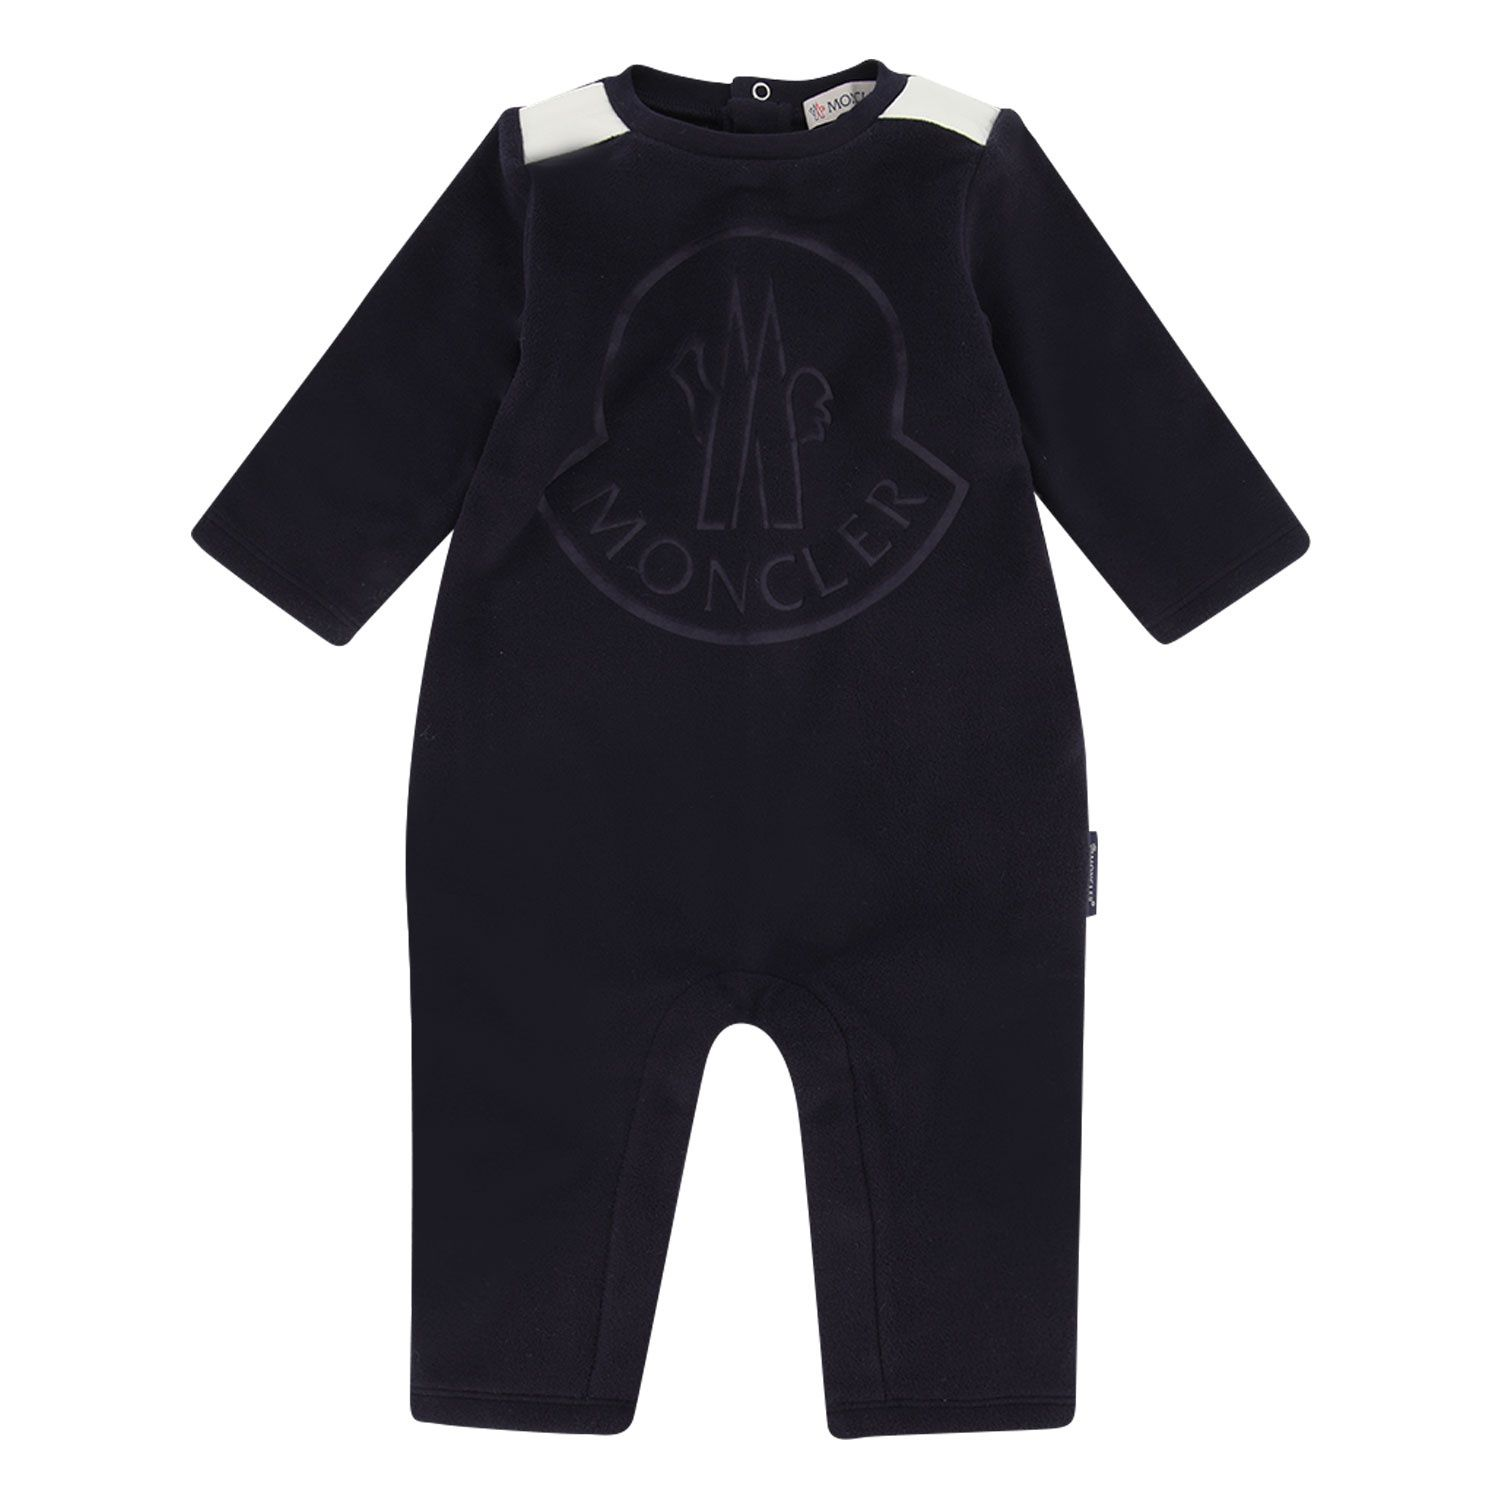 Picture of Moncler 8O60000 baby playsuit navy